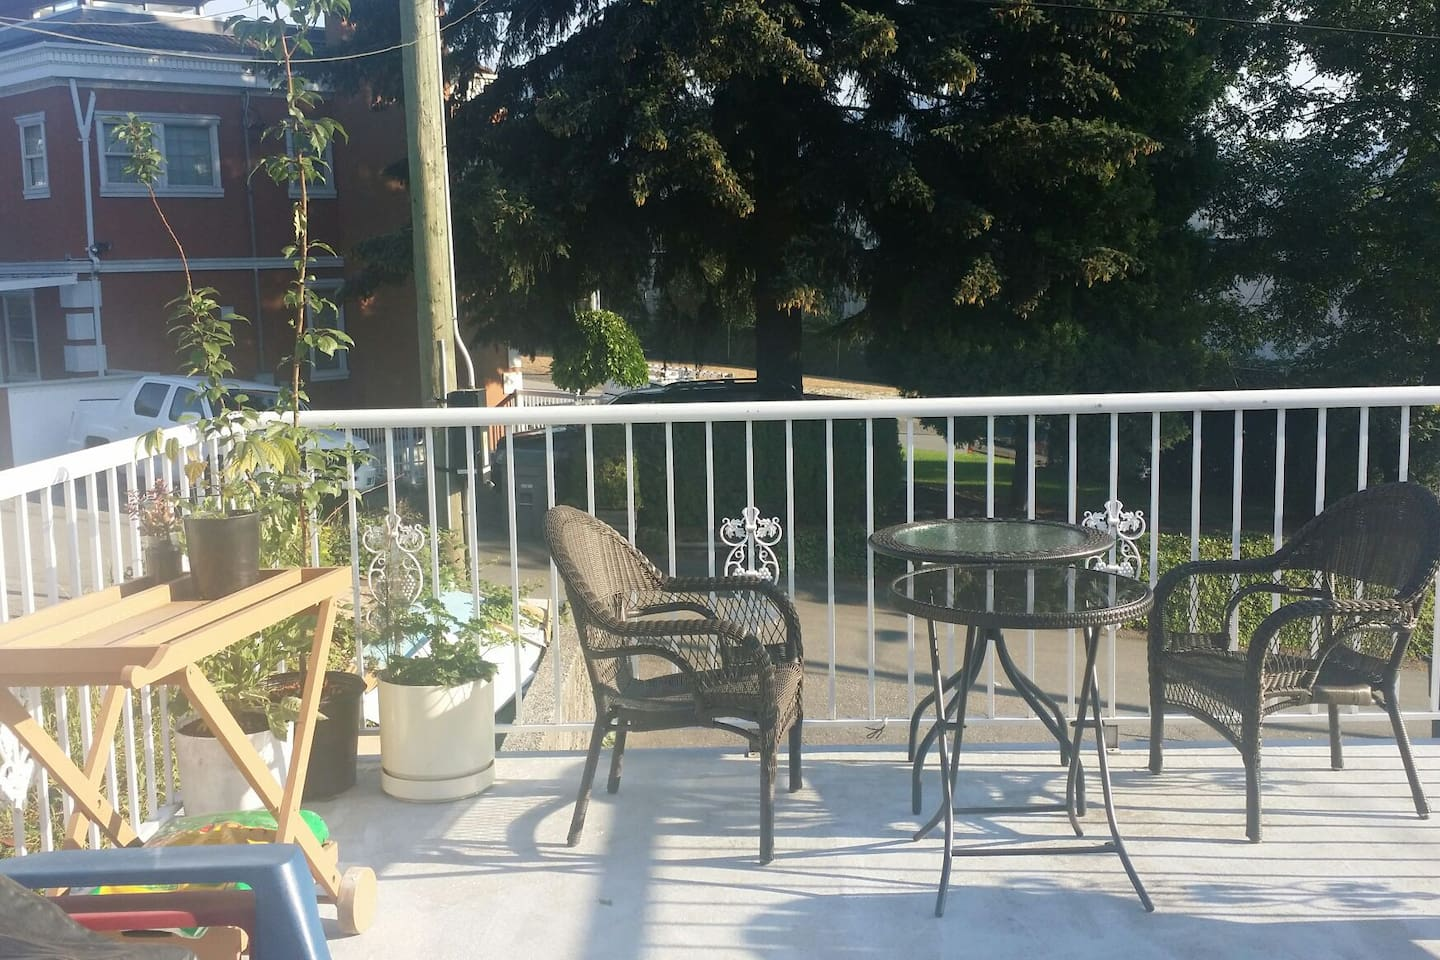 My back porch.  Lots of room.